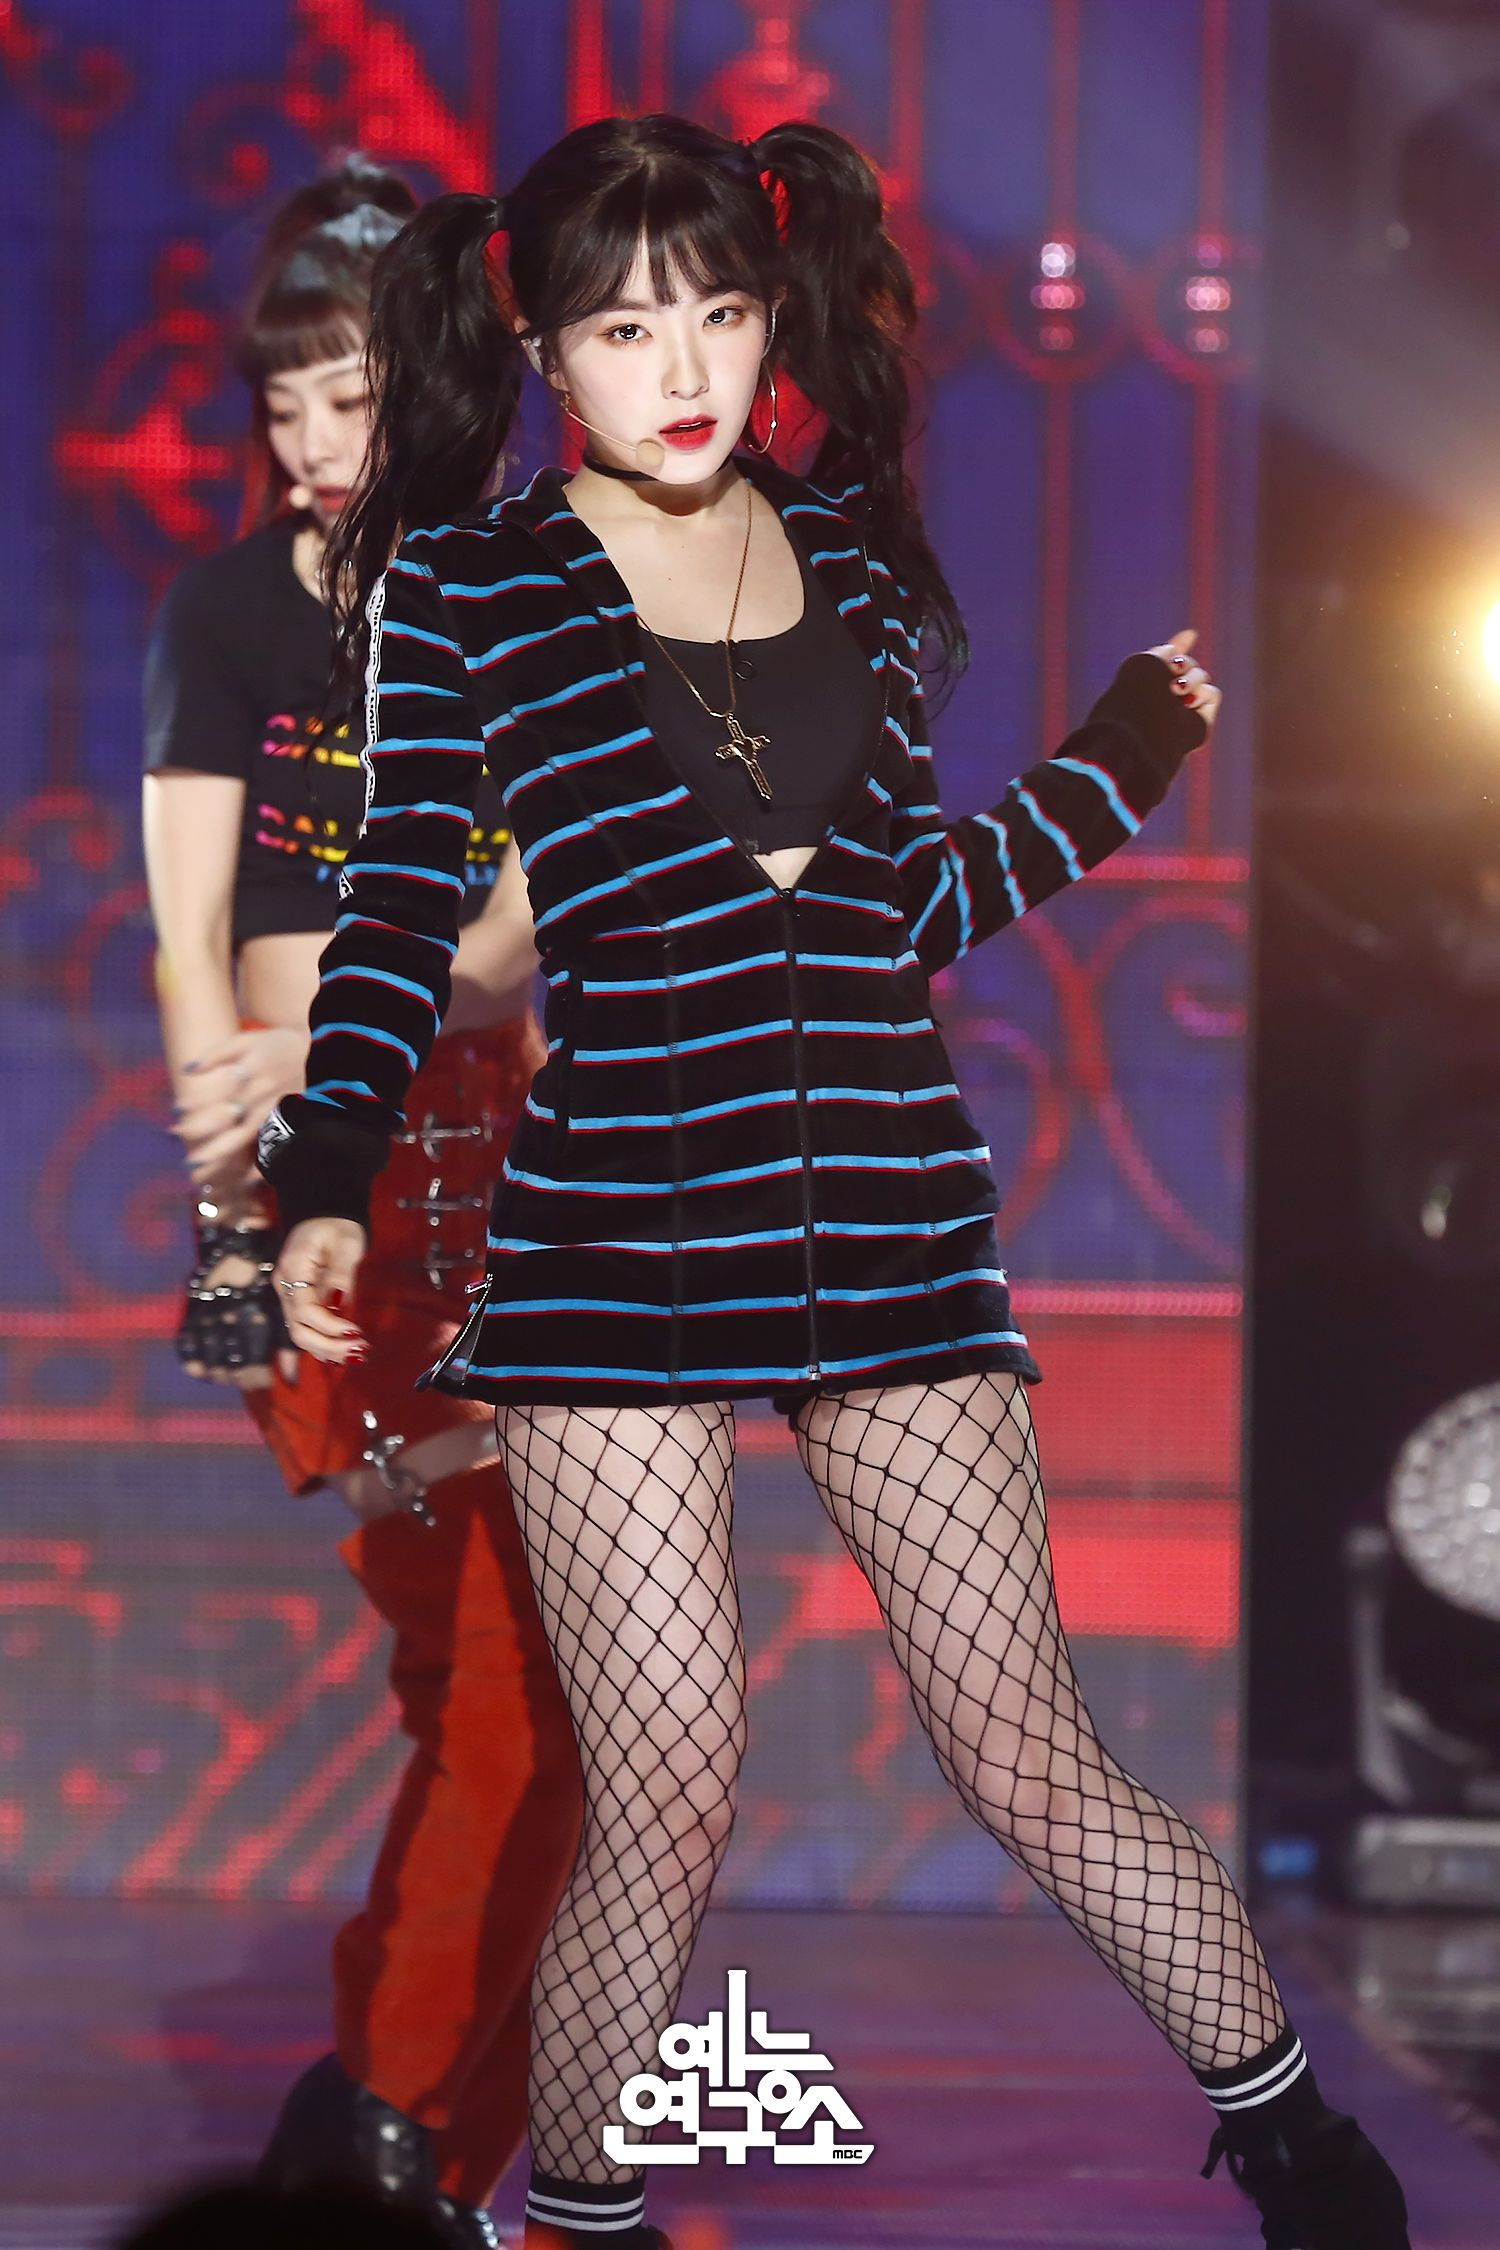 20 Idols Who Caused Jaws To Drop In Sexy Fishnet Stockings ... | 1500 x 2250 jpeg 335kB